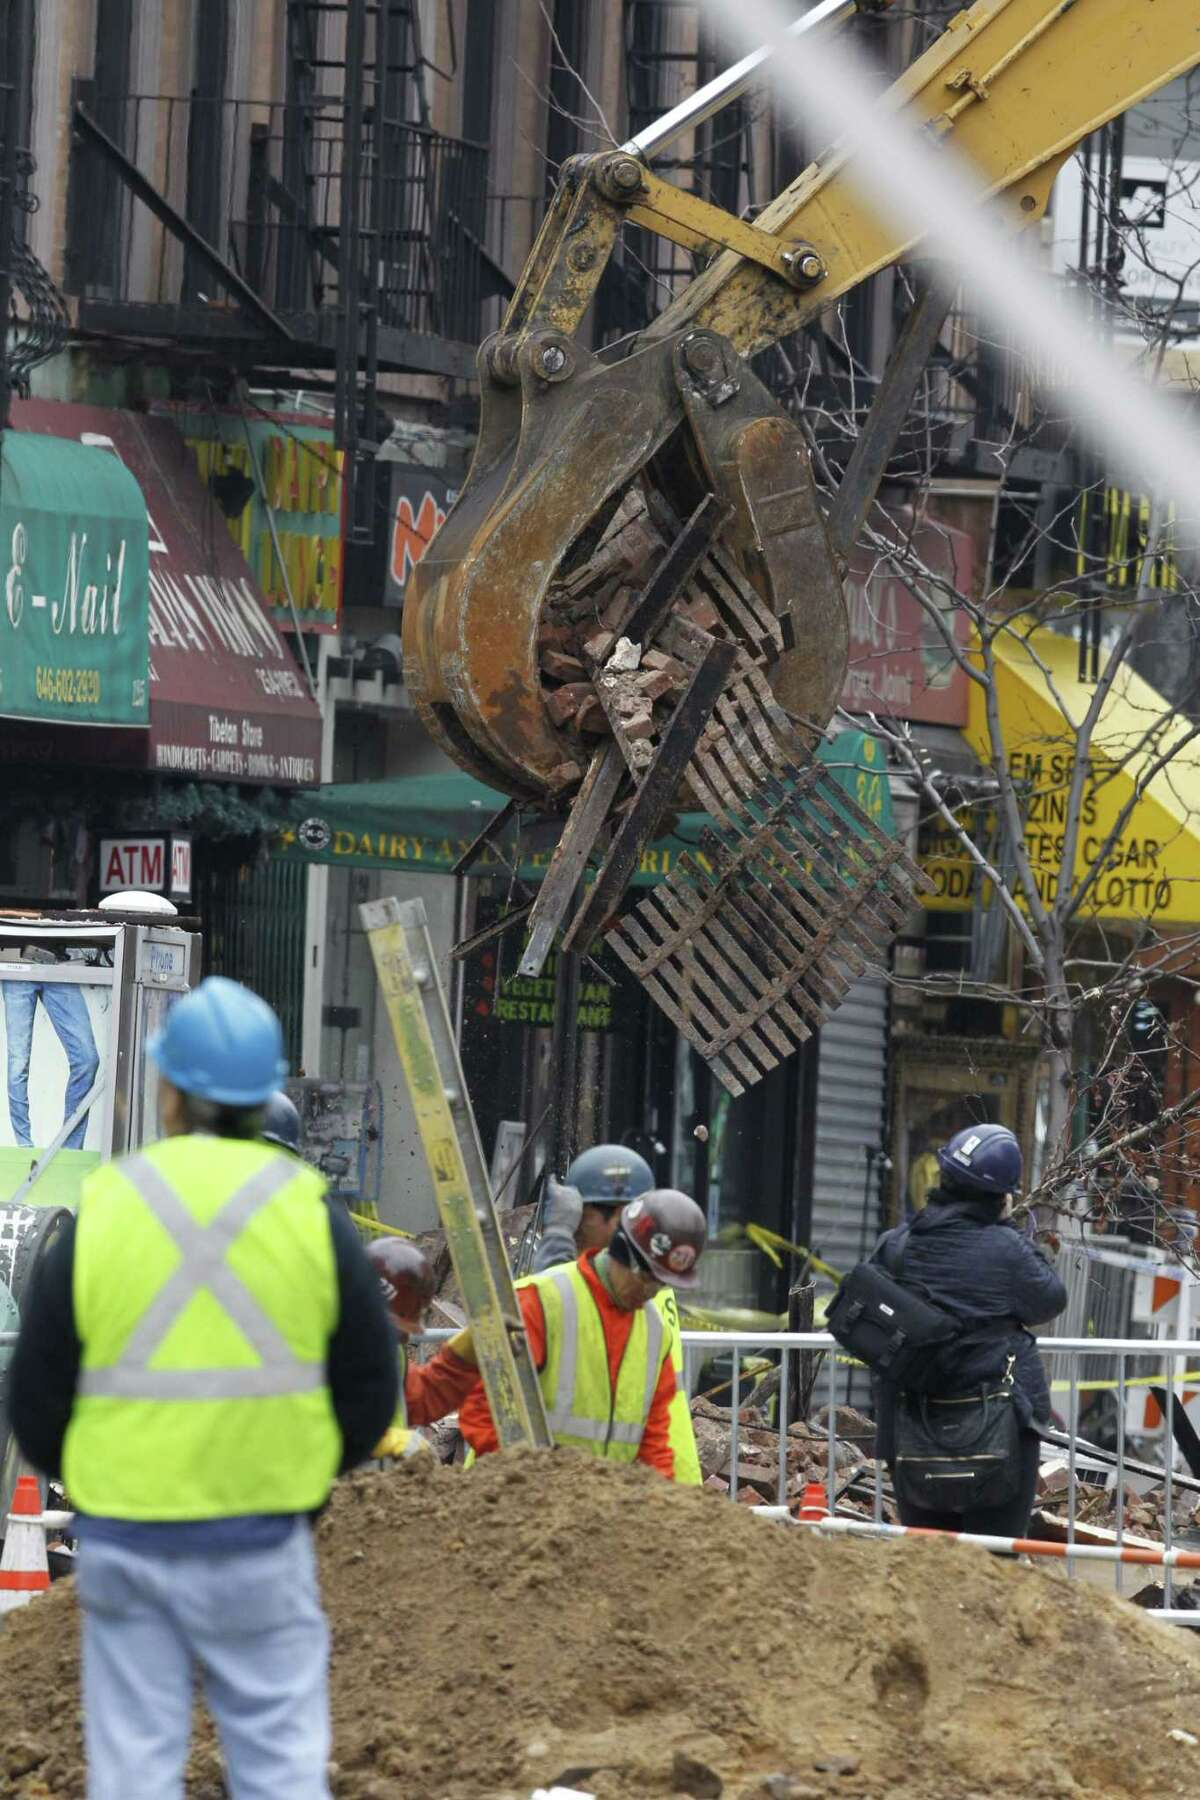 Debris are cleaned up from the site of a building collapse in the East Village neighborhood of New York on March 27, 2015. Nineteen people were injured, four critically, after the powerful blast and fire sent flames soaring and debris flying Thursday afternoon.